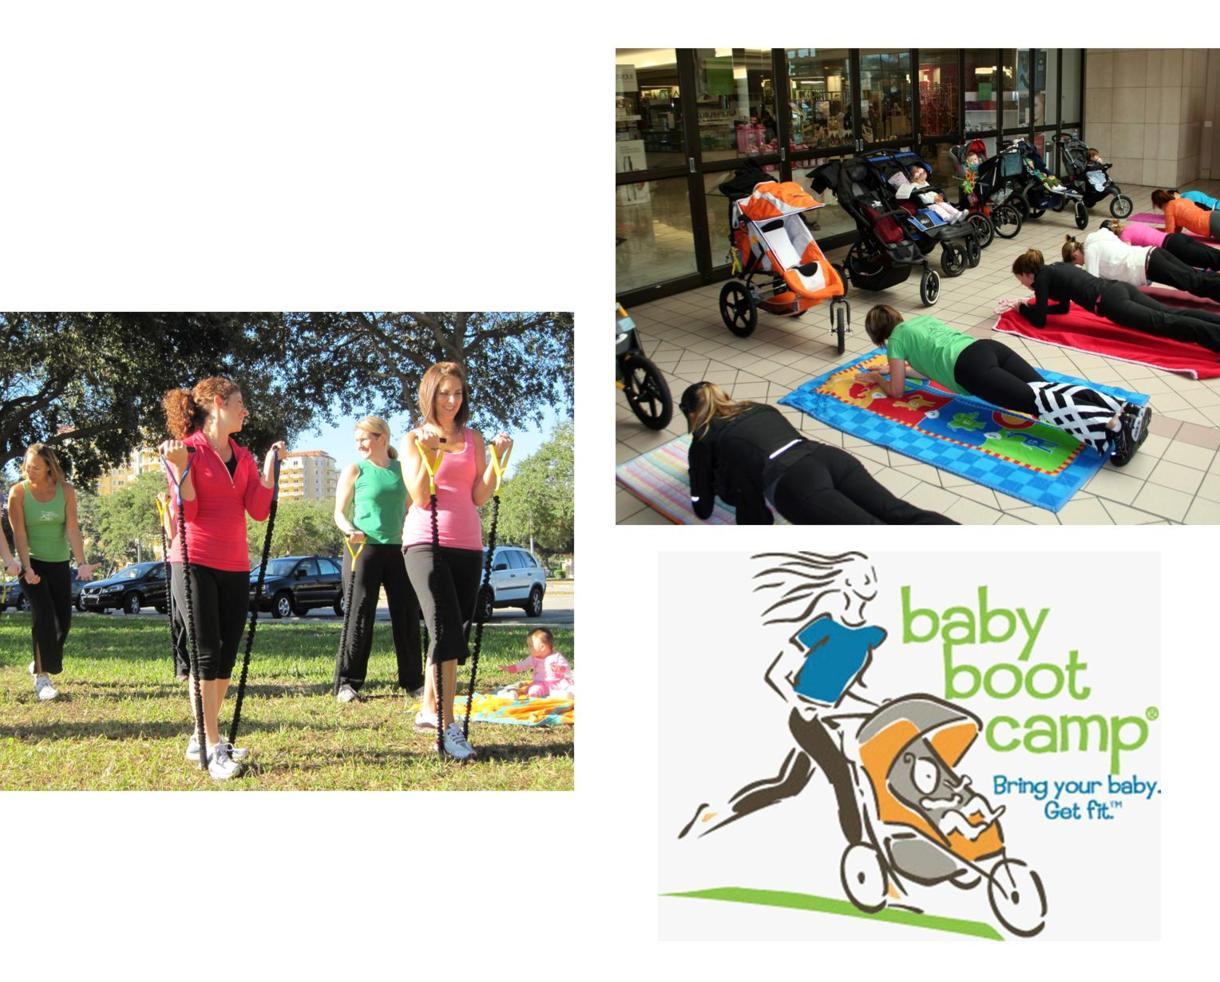 $46 for 6 Baby Boot Camp Classes and Equipment ($92 value - 50% off)